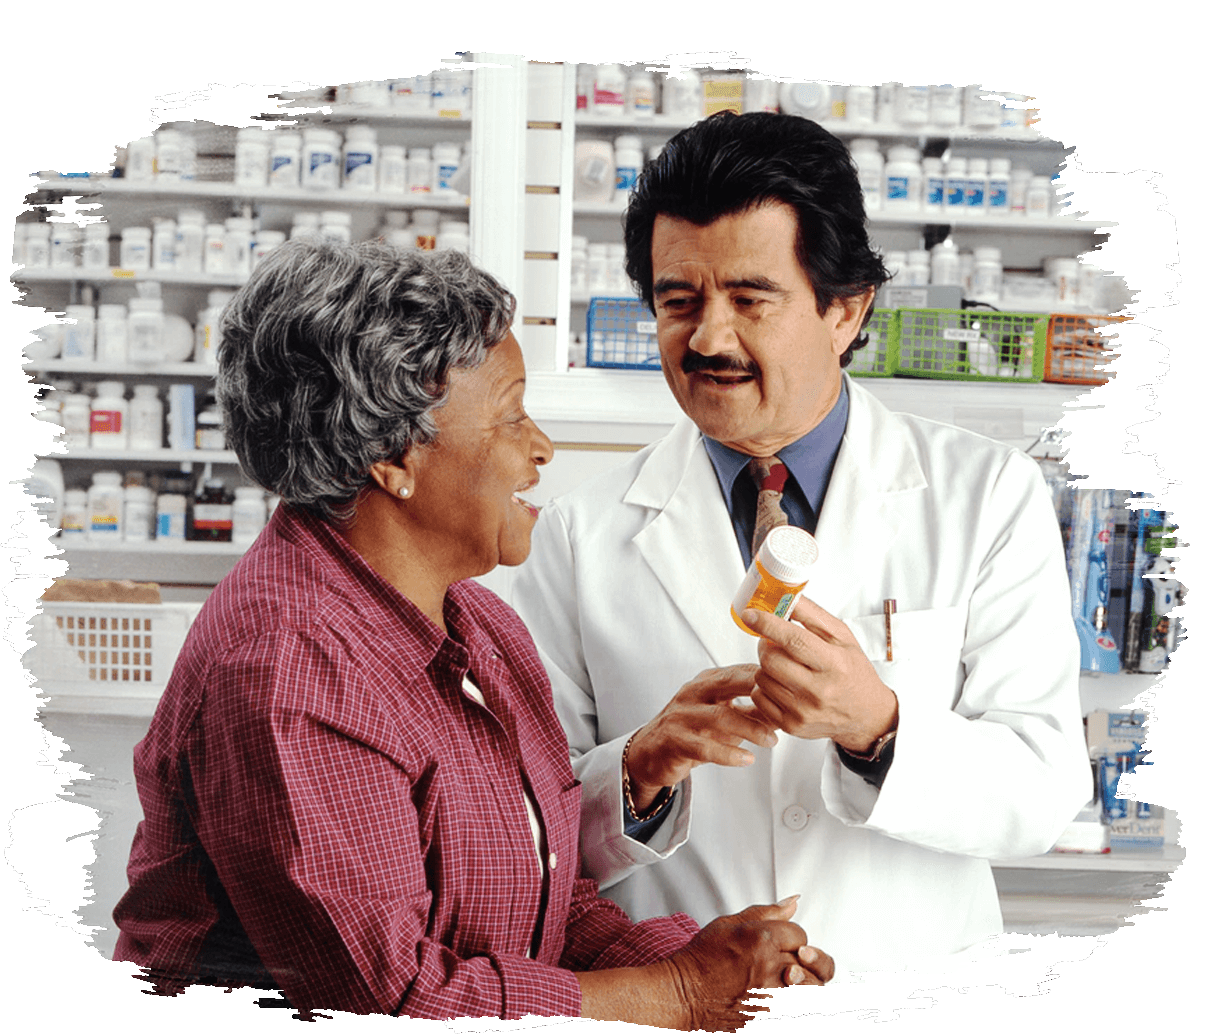 This is an image of a pharmacist advising a woman on her drug prescription